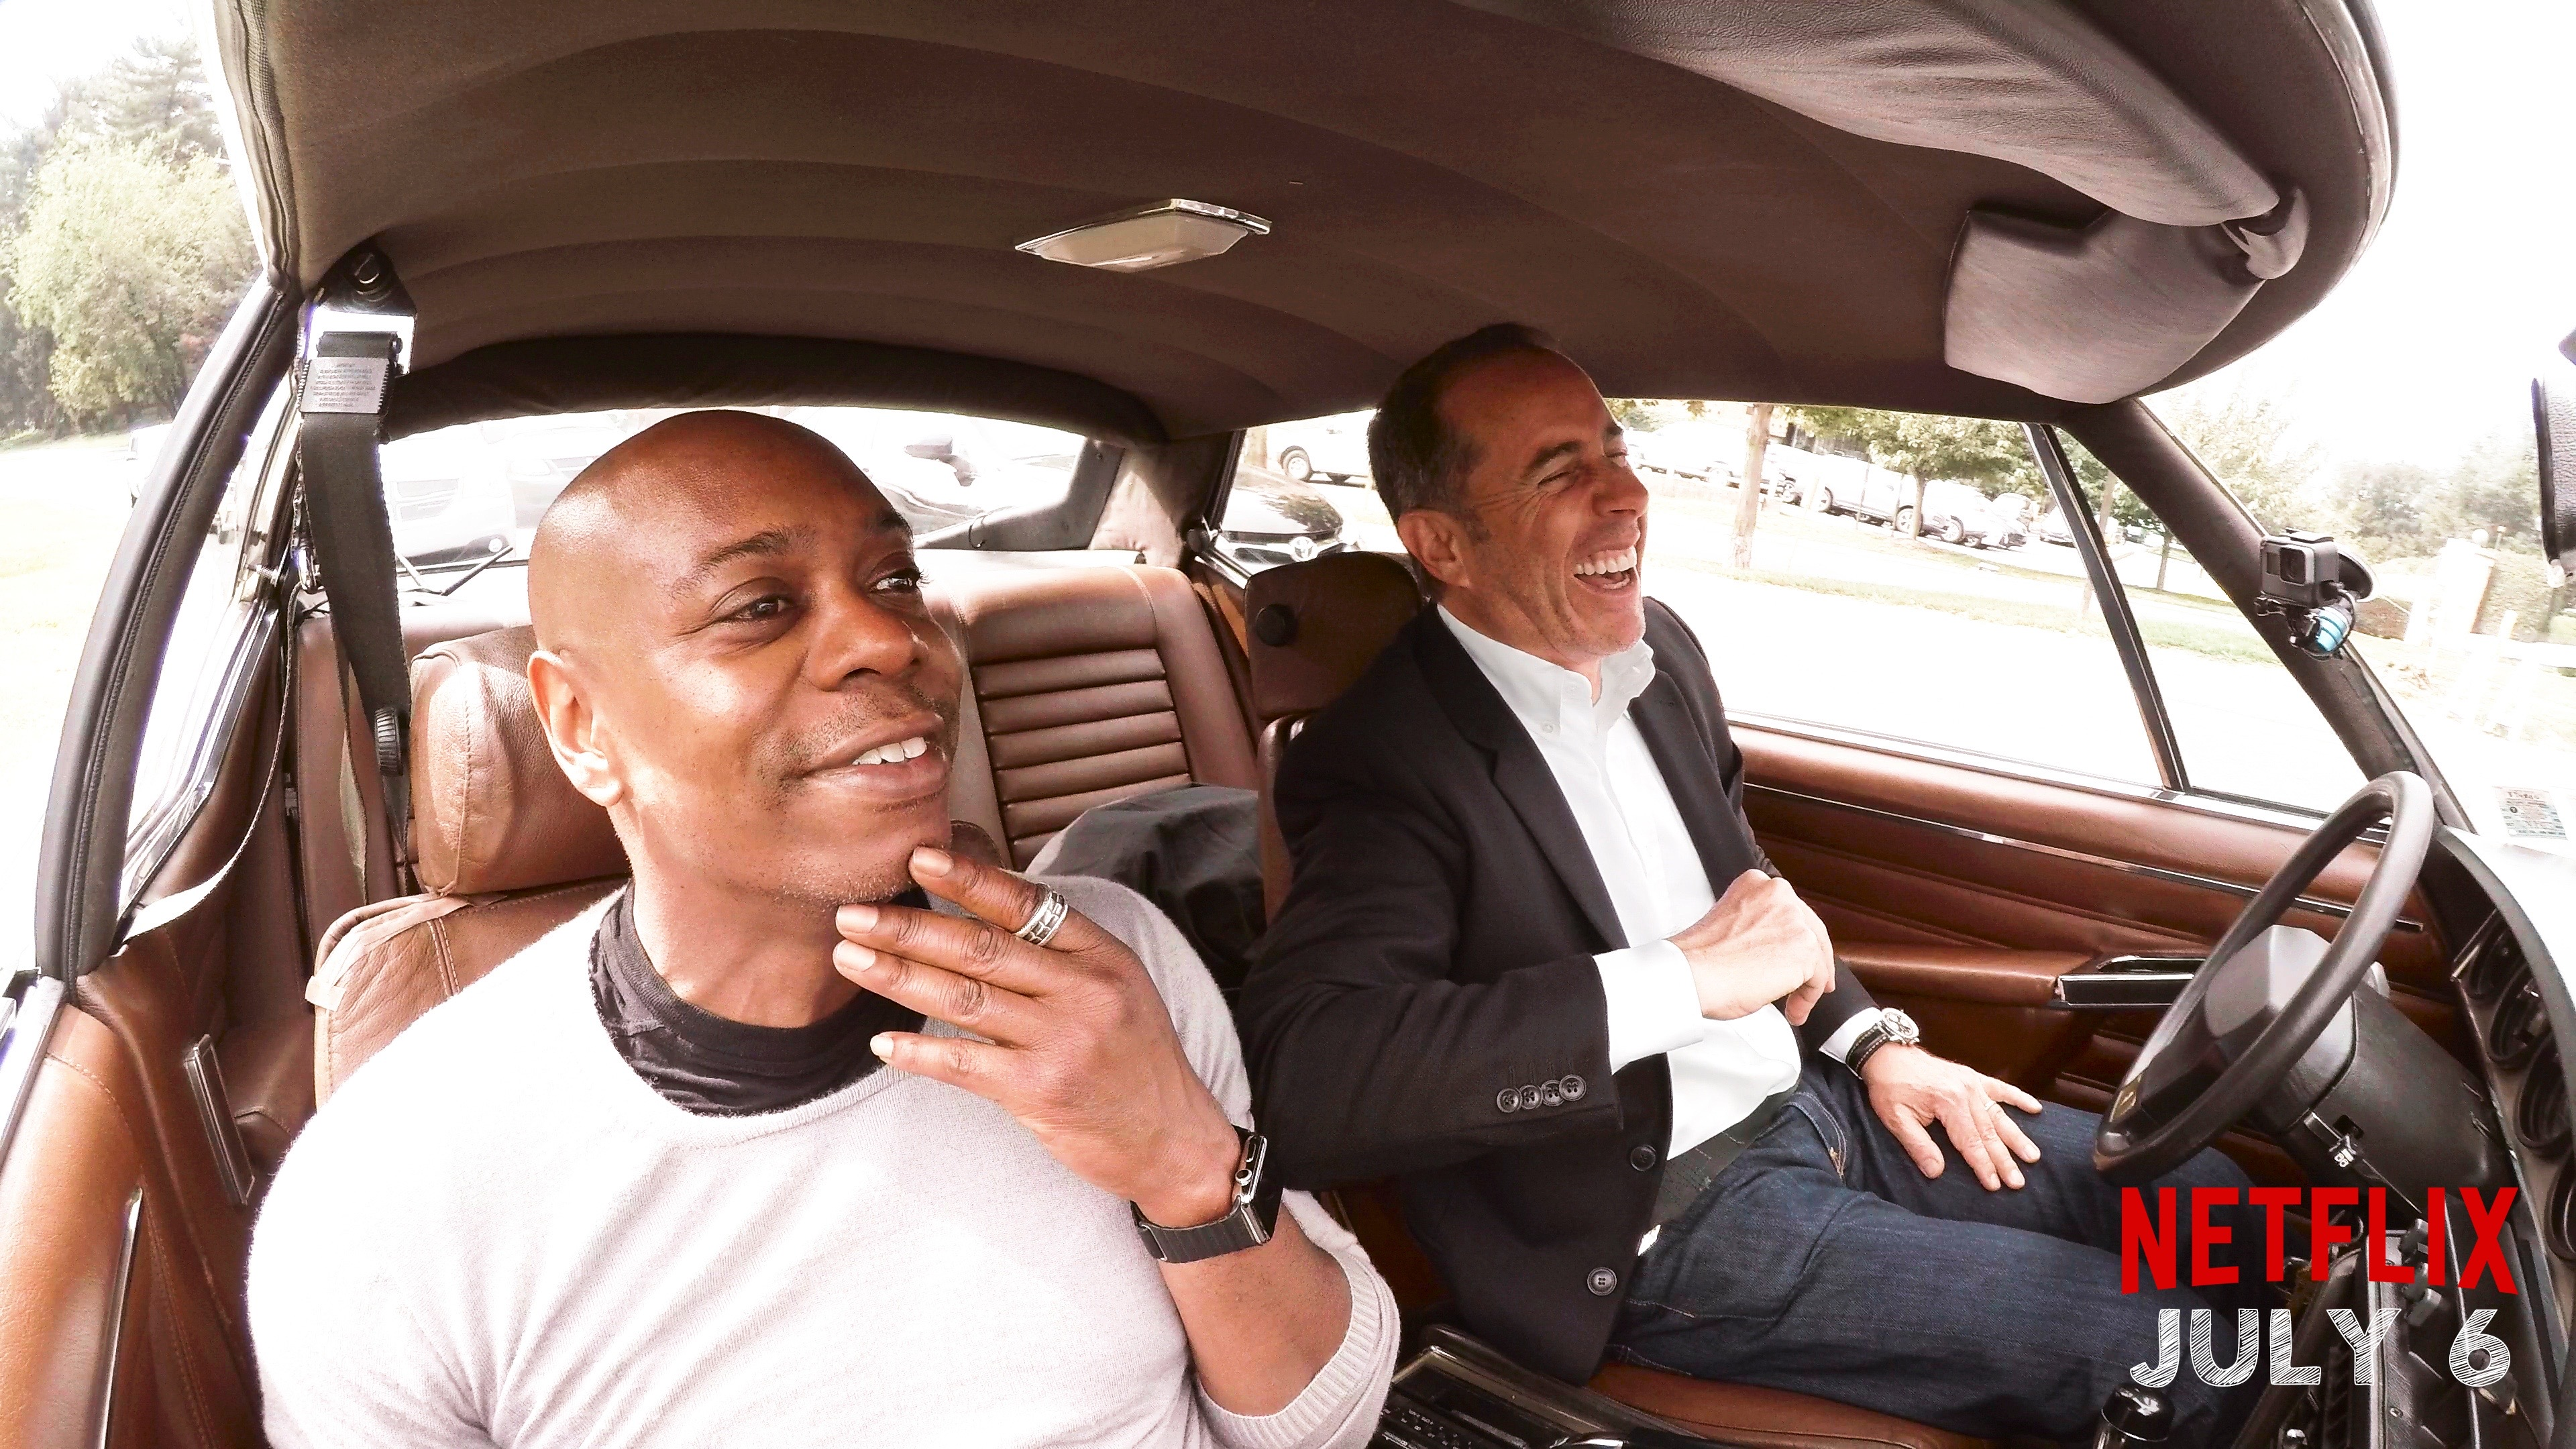 Jerry Seinfeld, Comedians + cars + coffee = Another season of nothing?, ClassicCars.com Journal